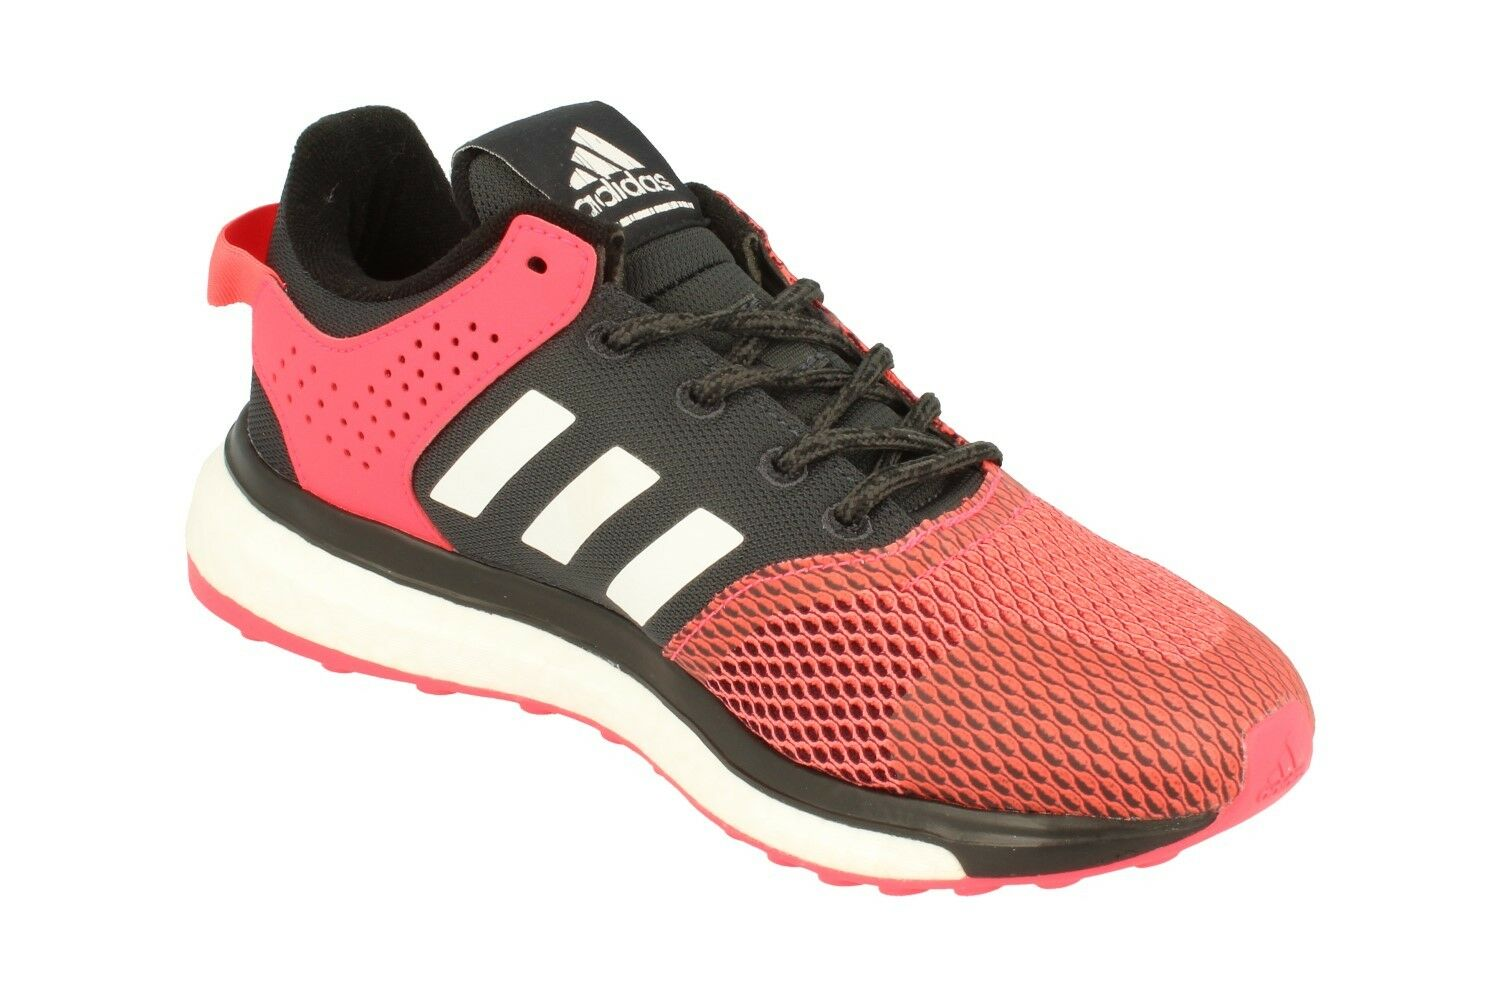 Adidas Response 3 Boost Womens Running Trainers Sneakers AQ6107